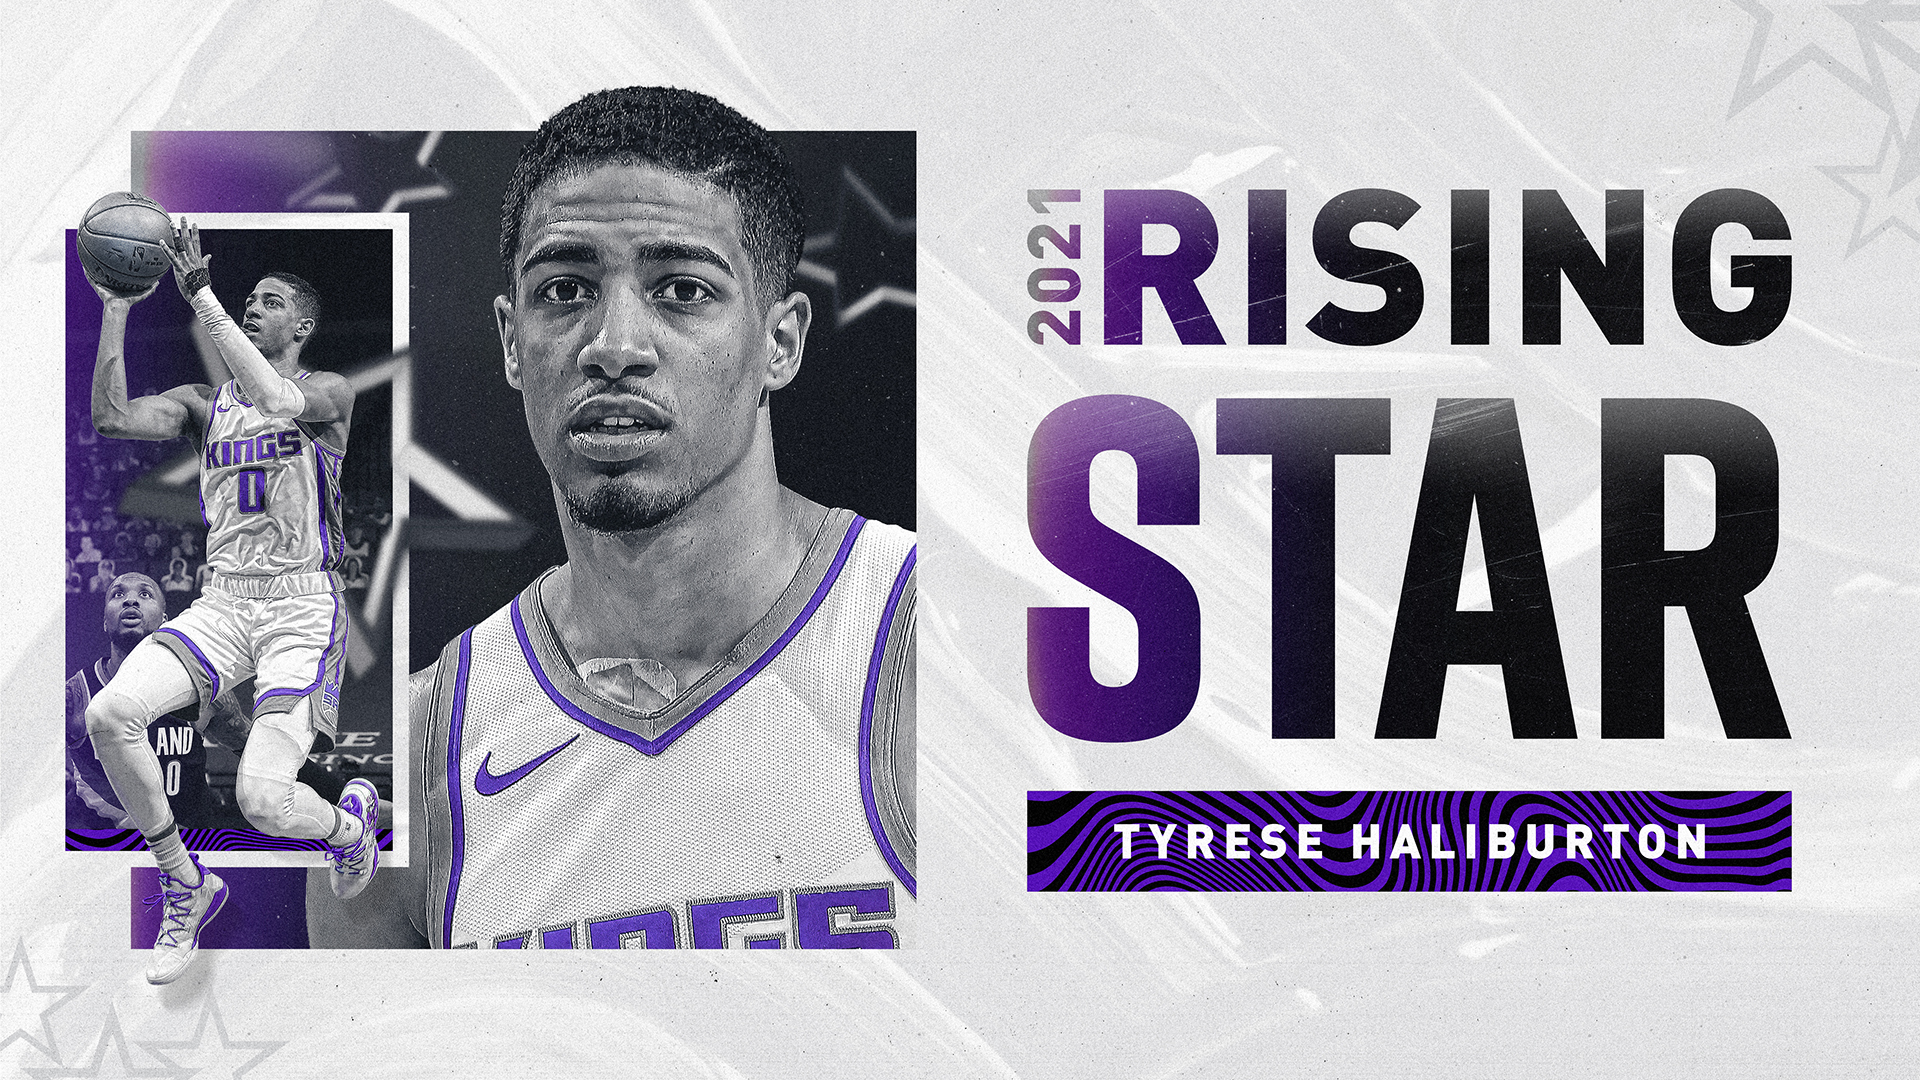 Tyrese Haliburton Named 2021 NBA Rising Star!